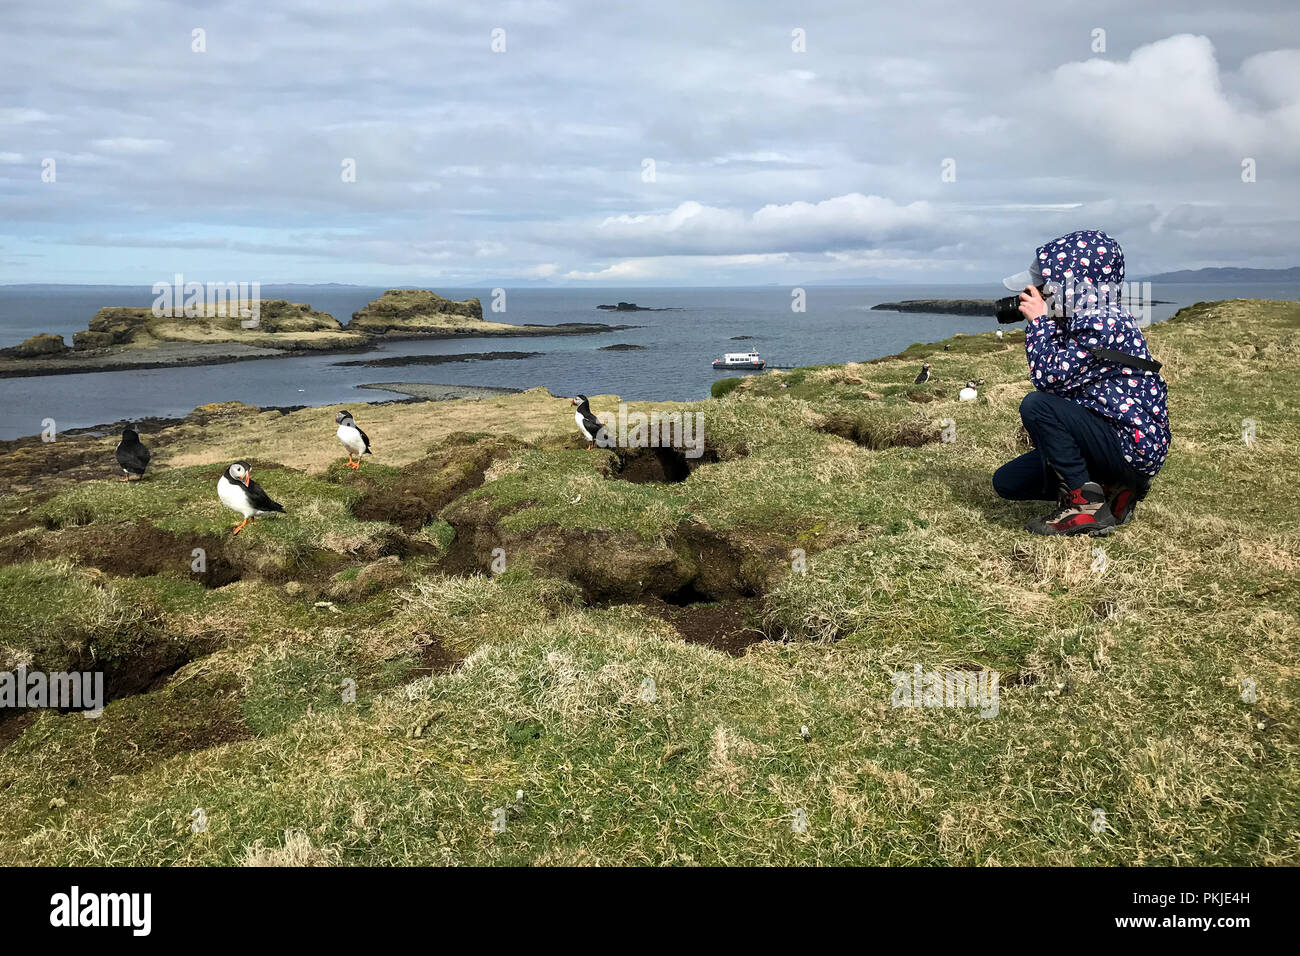 Young girl taking a photo of a puffin on the Scottish Island of Lunga - Stock Image